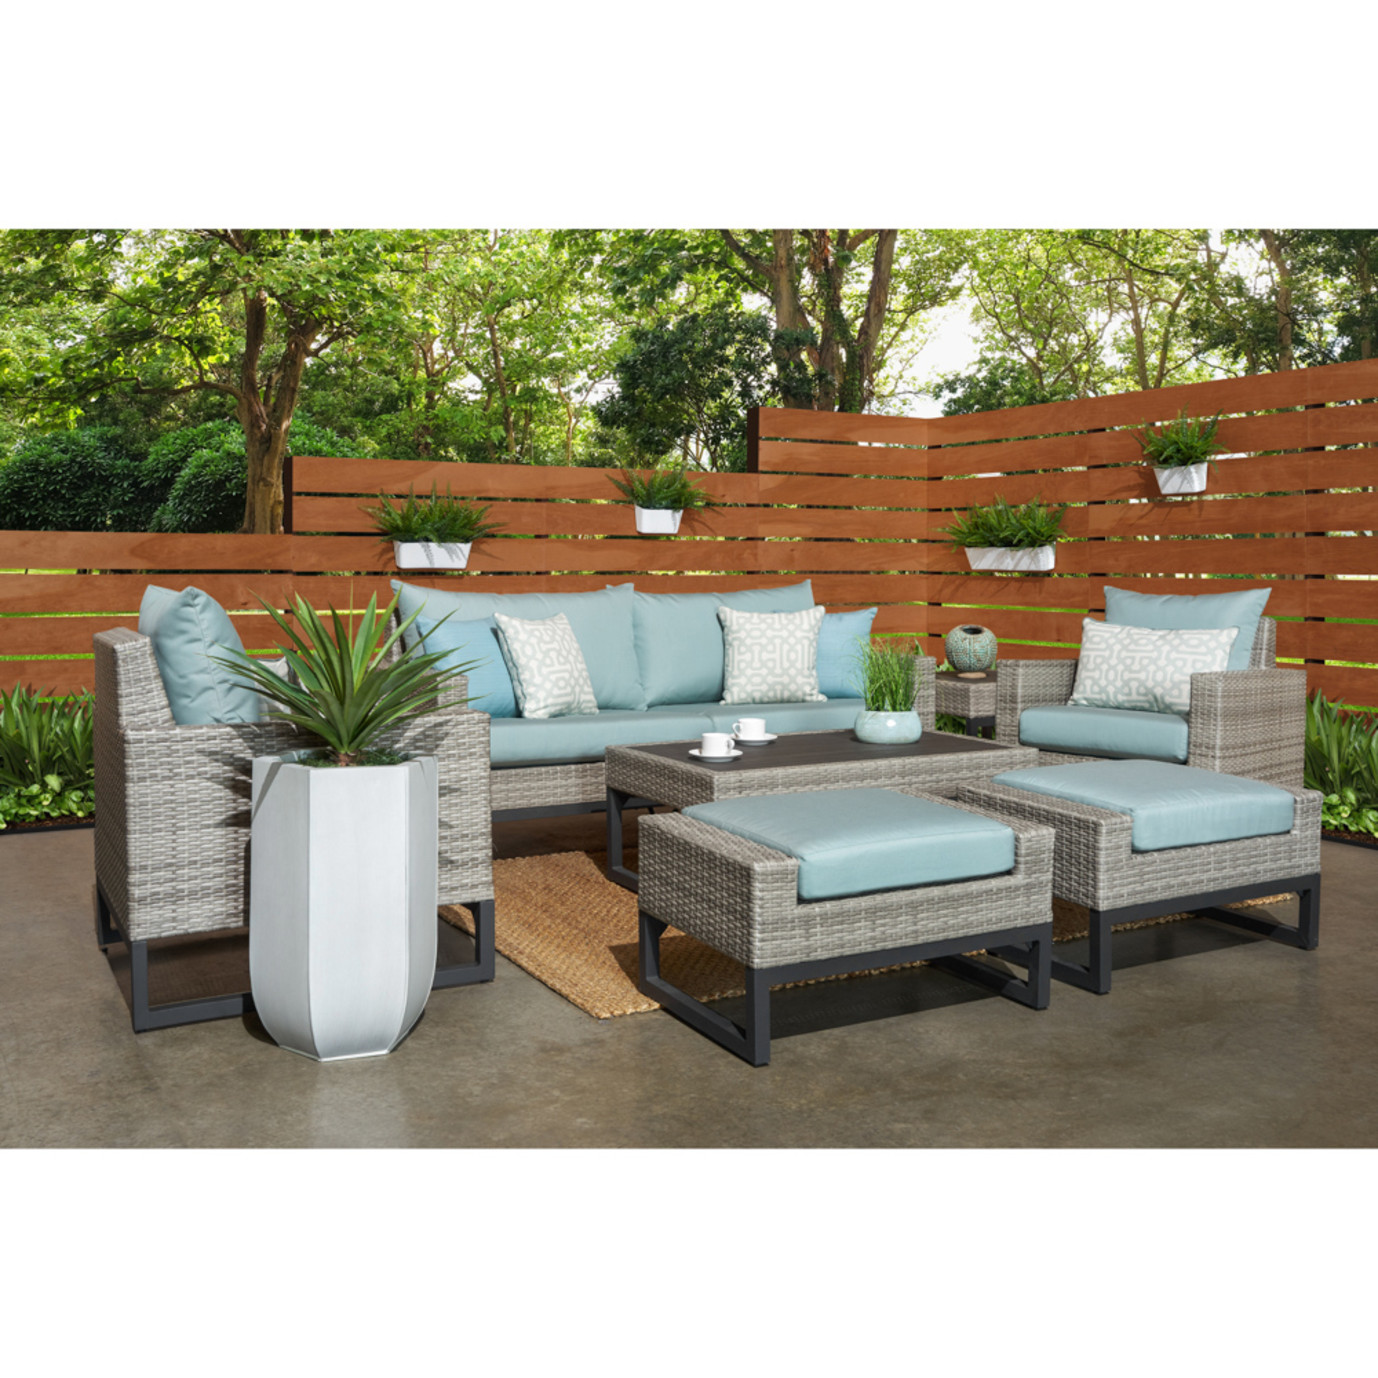 Milo™ Gray 7 Piece Deep Seating Set - Spa Blue